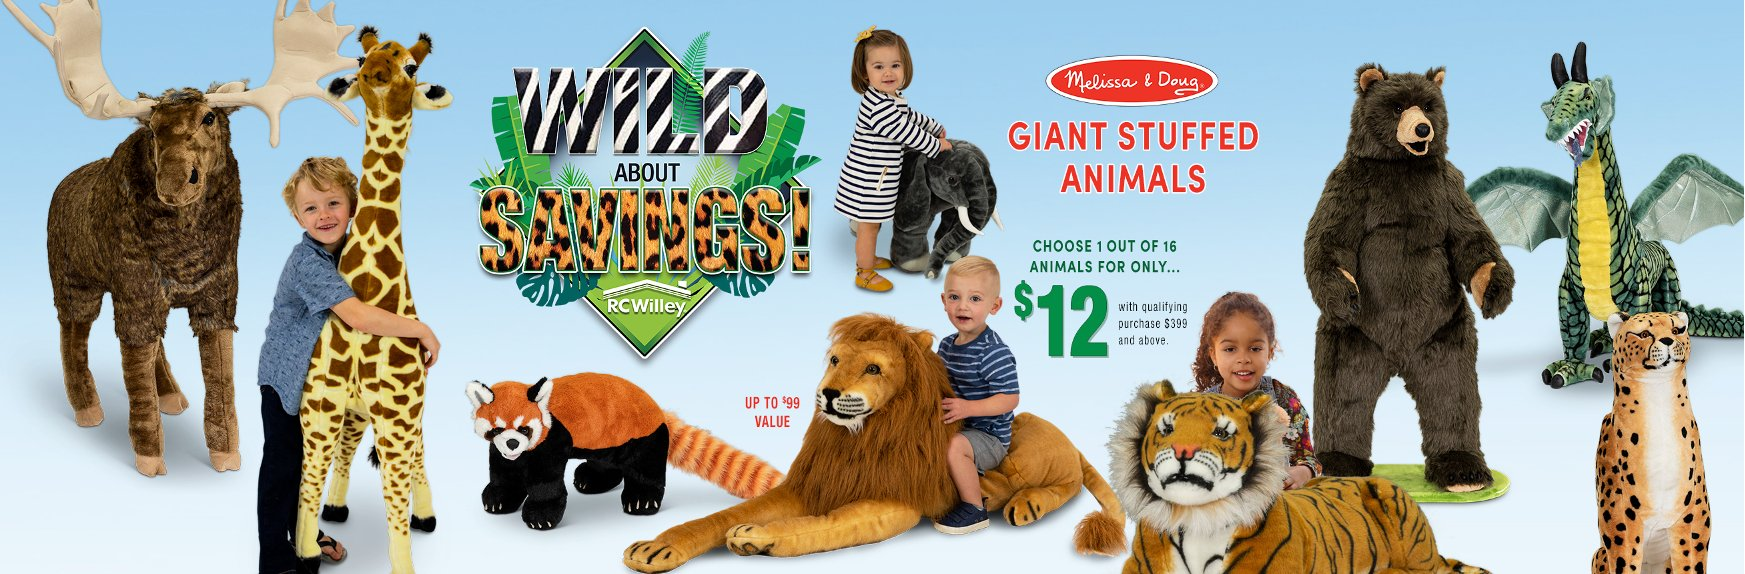 Get a Bonus Giant Stuffed Animal with Purchase During Our Wild About Savings Event | RC Willey